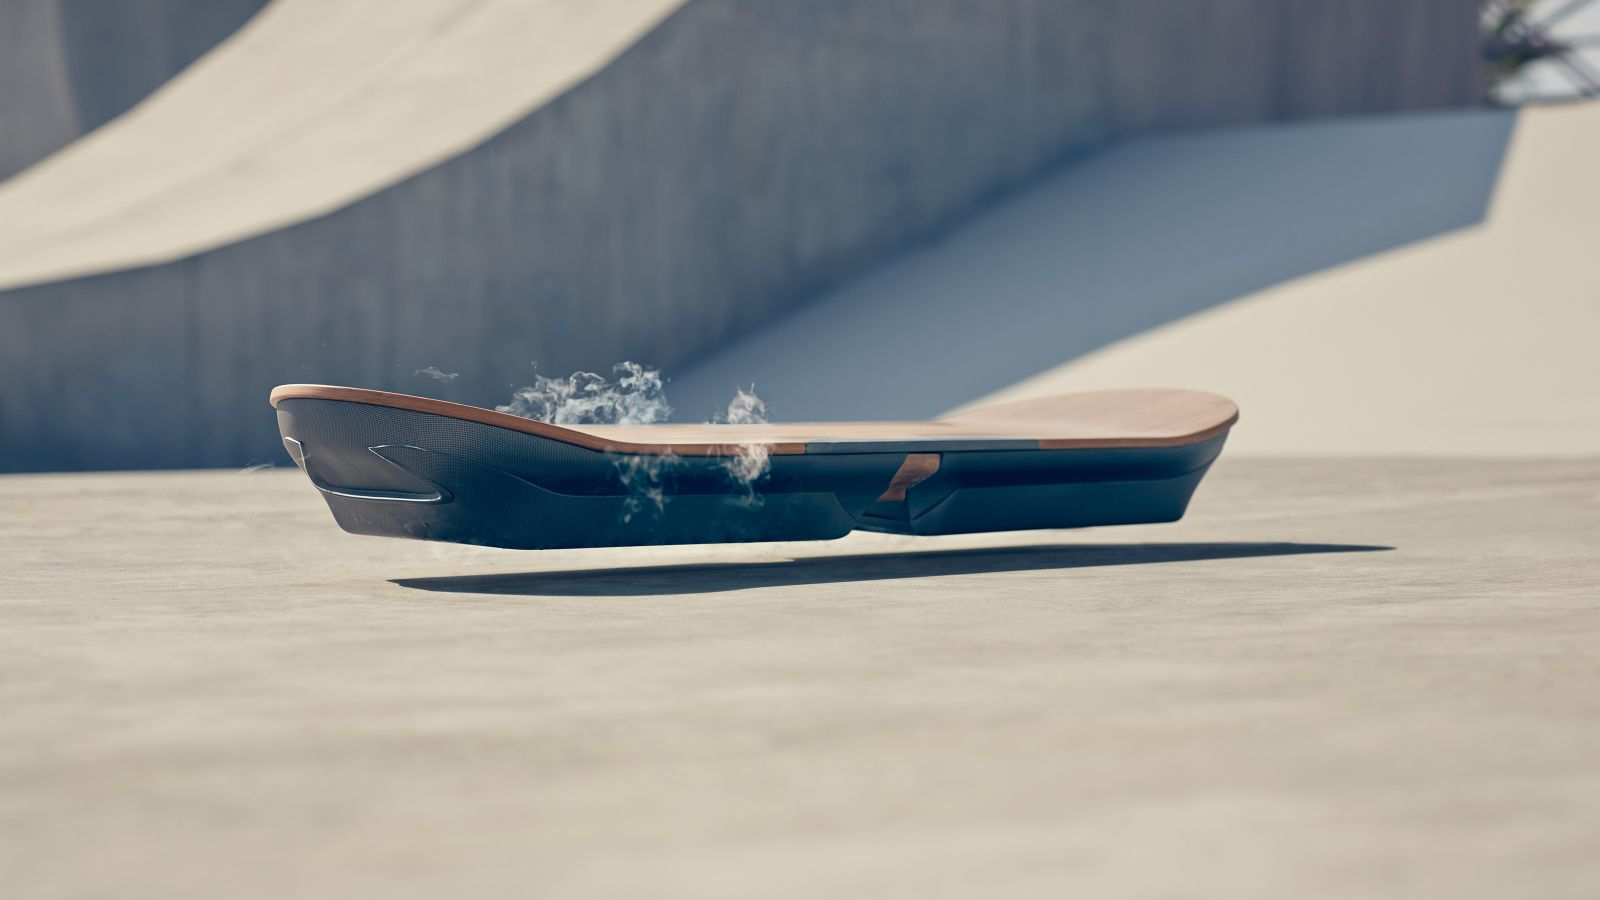 SLIDE, A Hoverboard Developed by Lexus That Uses Magnetic Levitation and Nitrogen-Cooled Superconductors